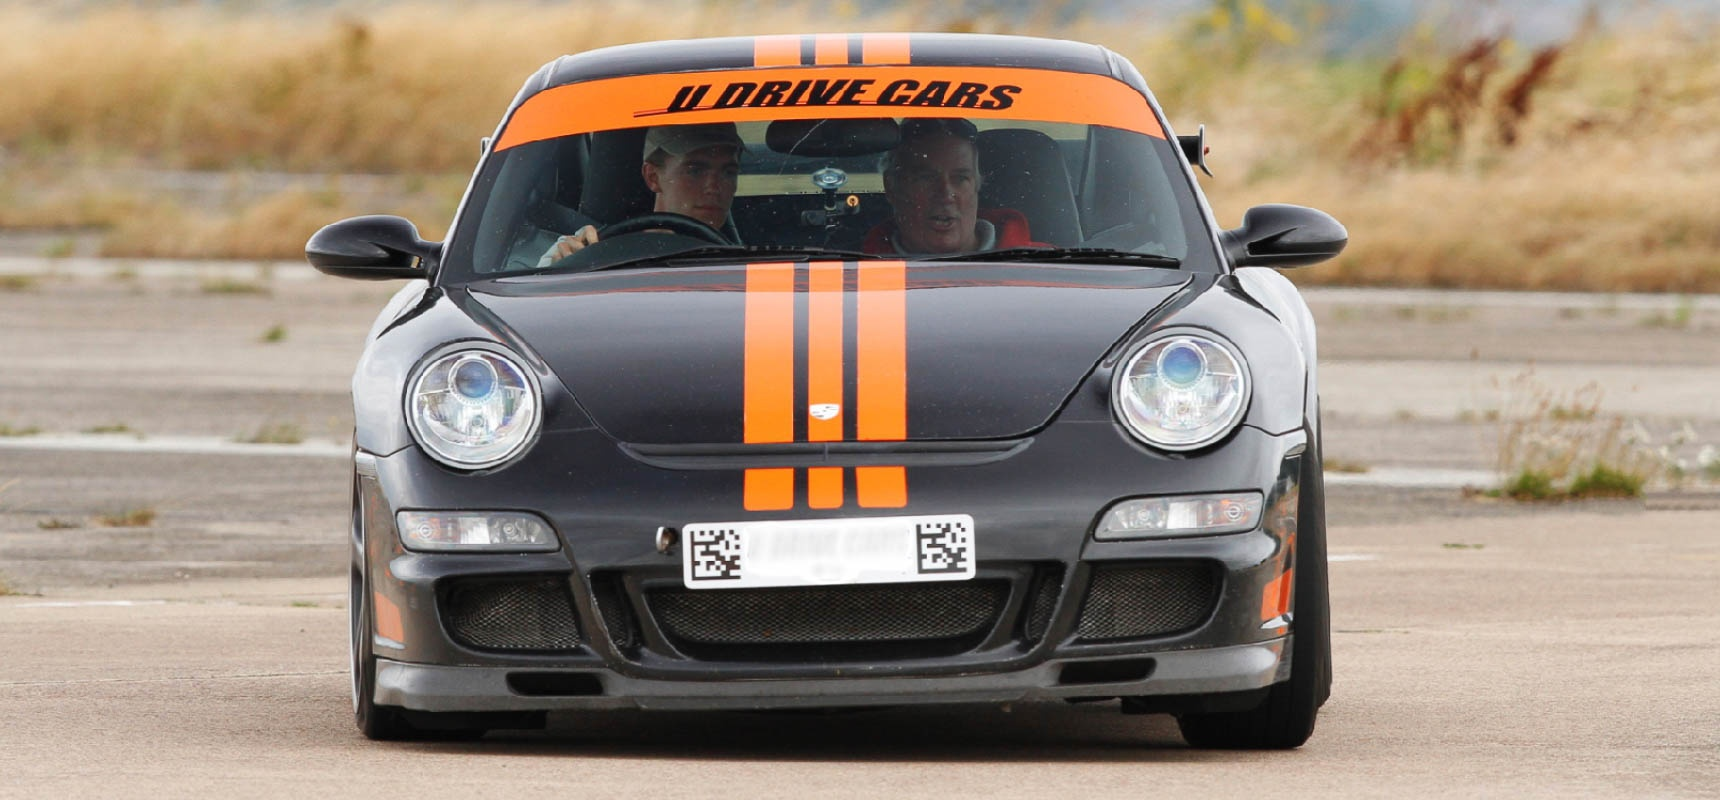 5 Super Car Driving Experience - Oxfordshire-9